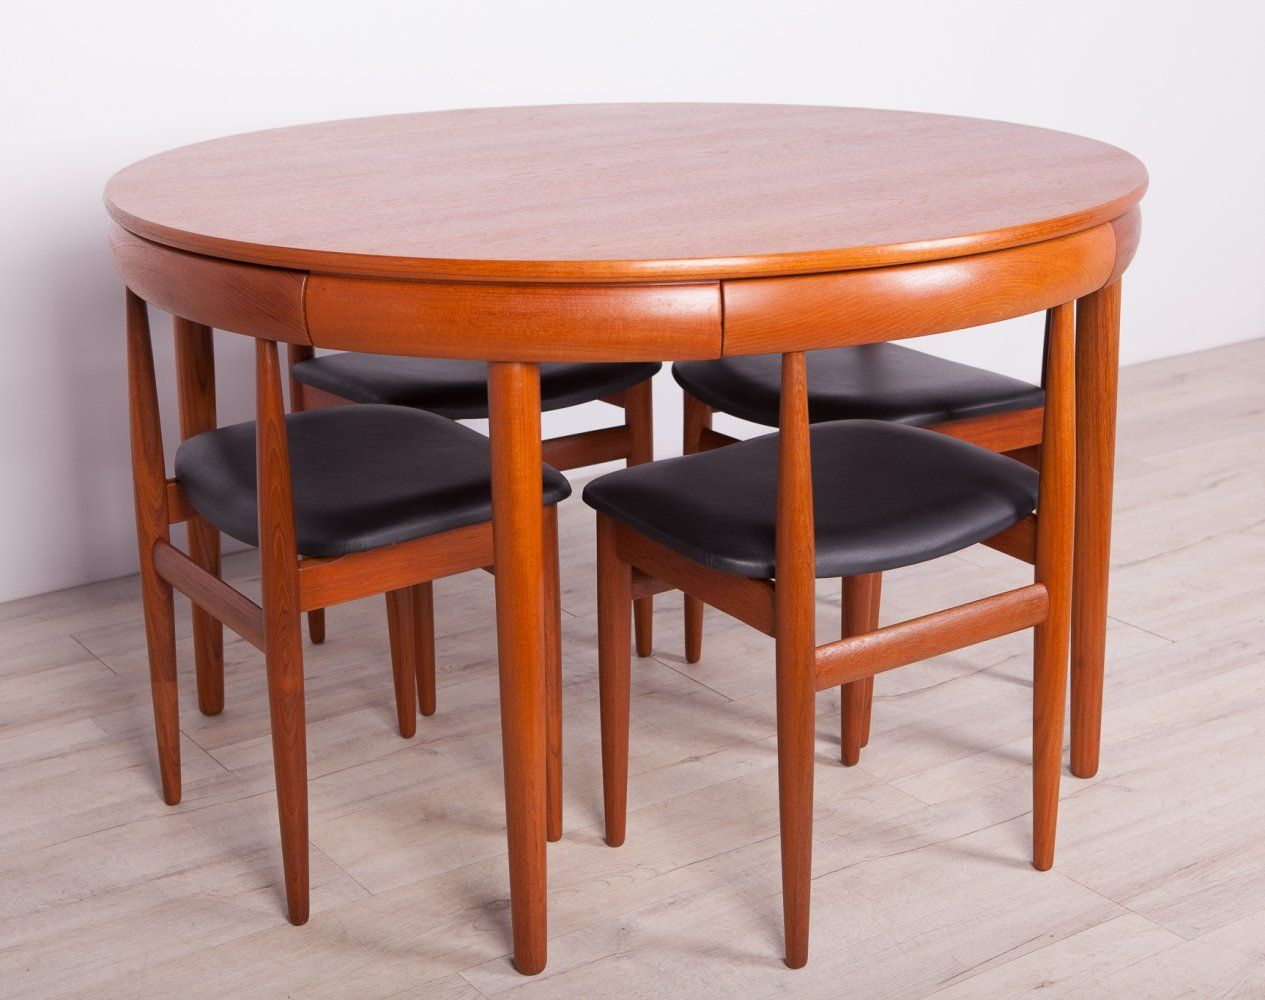 For Sale Mid Century Dining Table Chairs Set By H Olsen For Frem Rojle 1960s Vntg Vintag In 2020 Mid Century Dining Table Teak Dining Table Dining Table Chairs